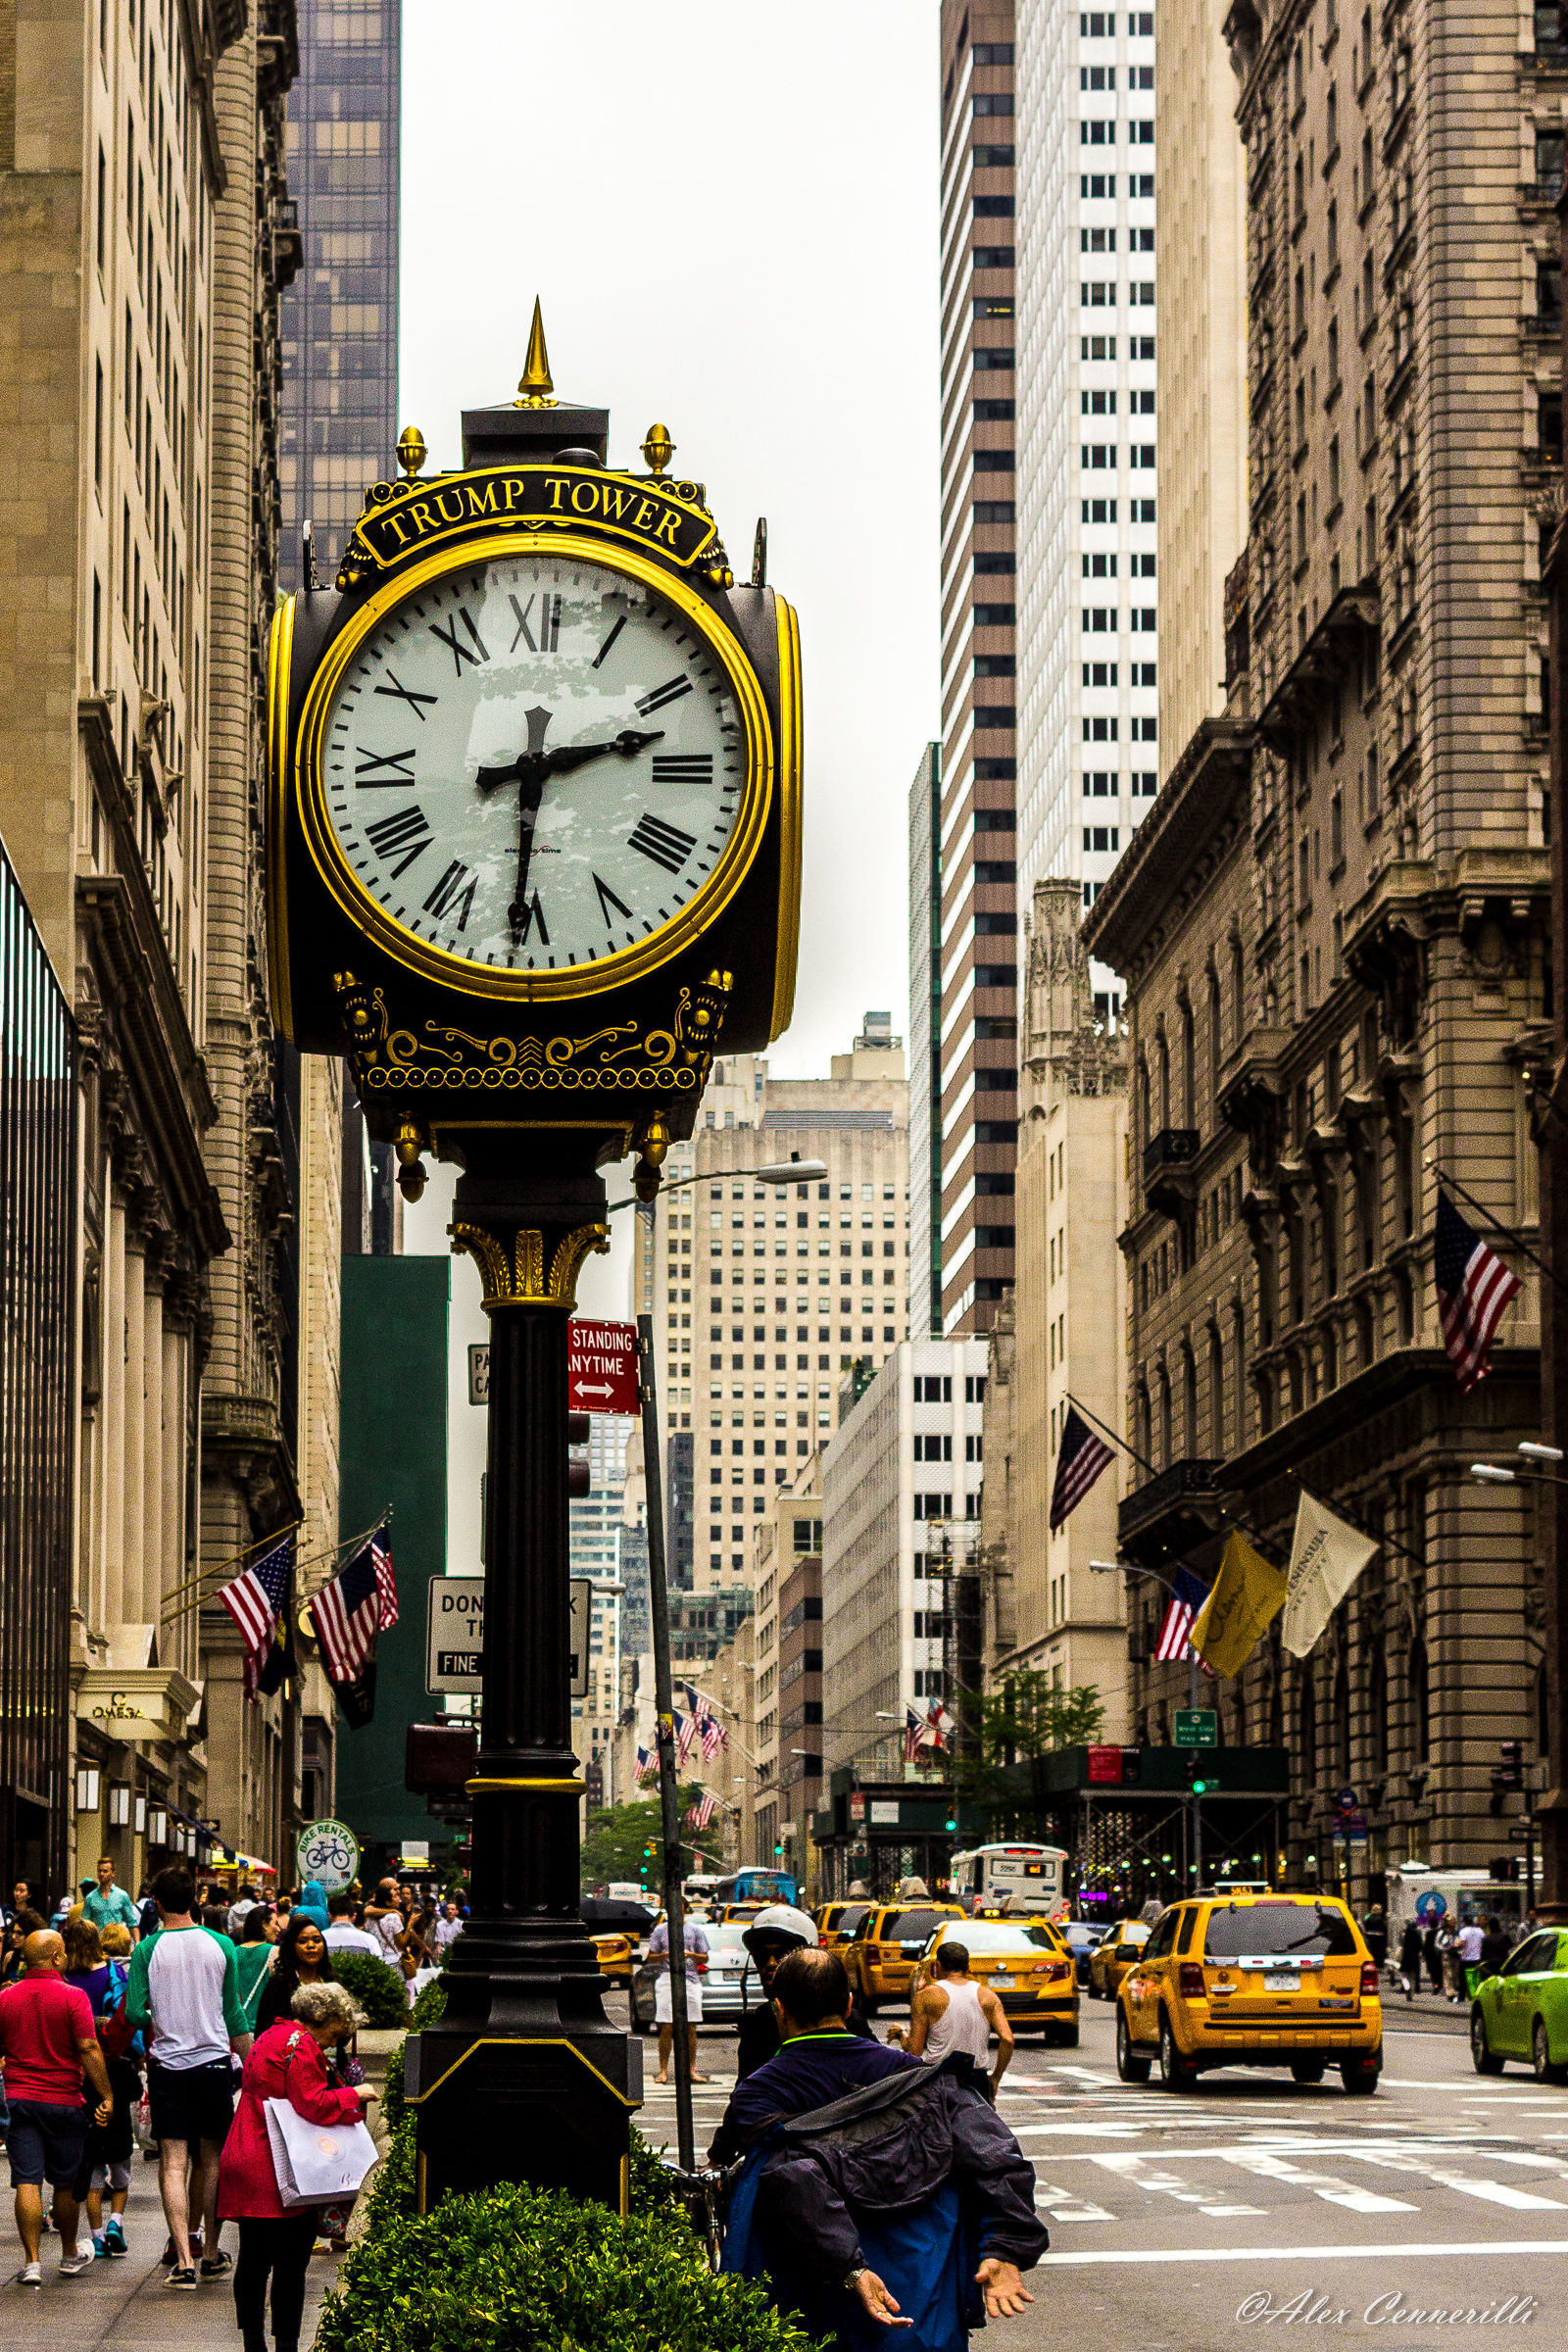 It's time to 5th ave...